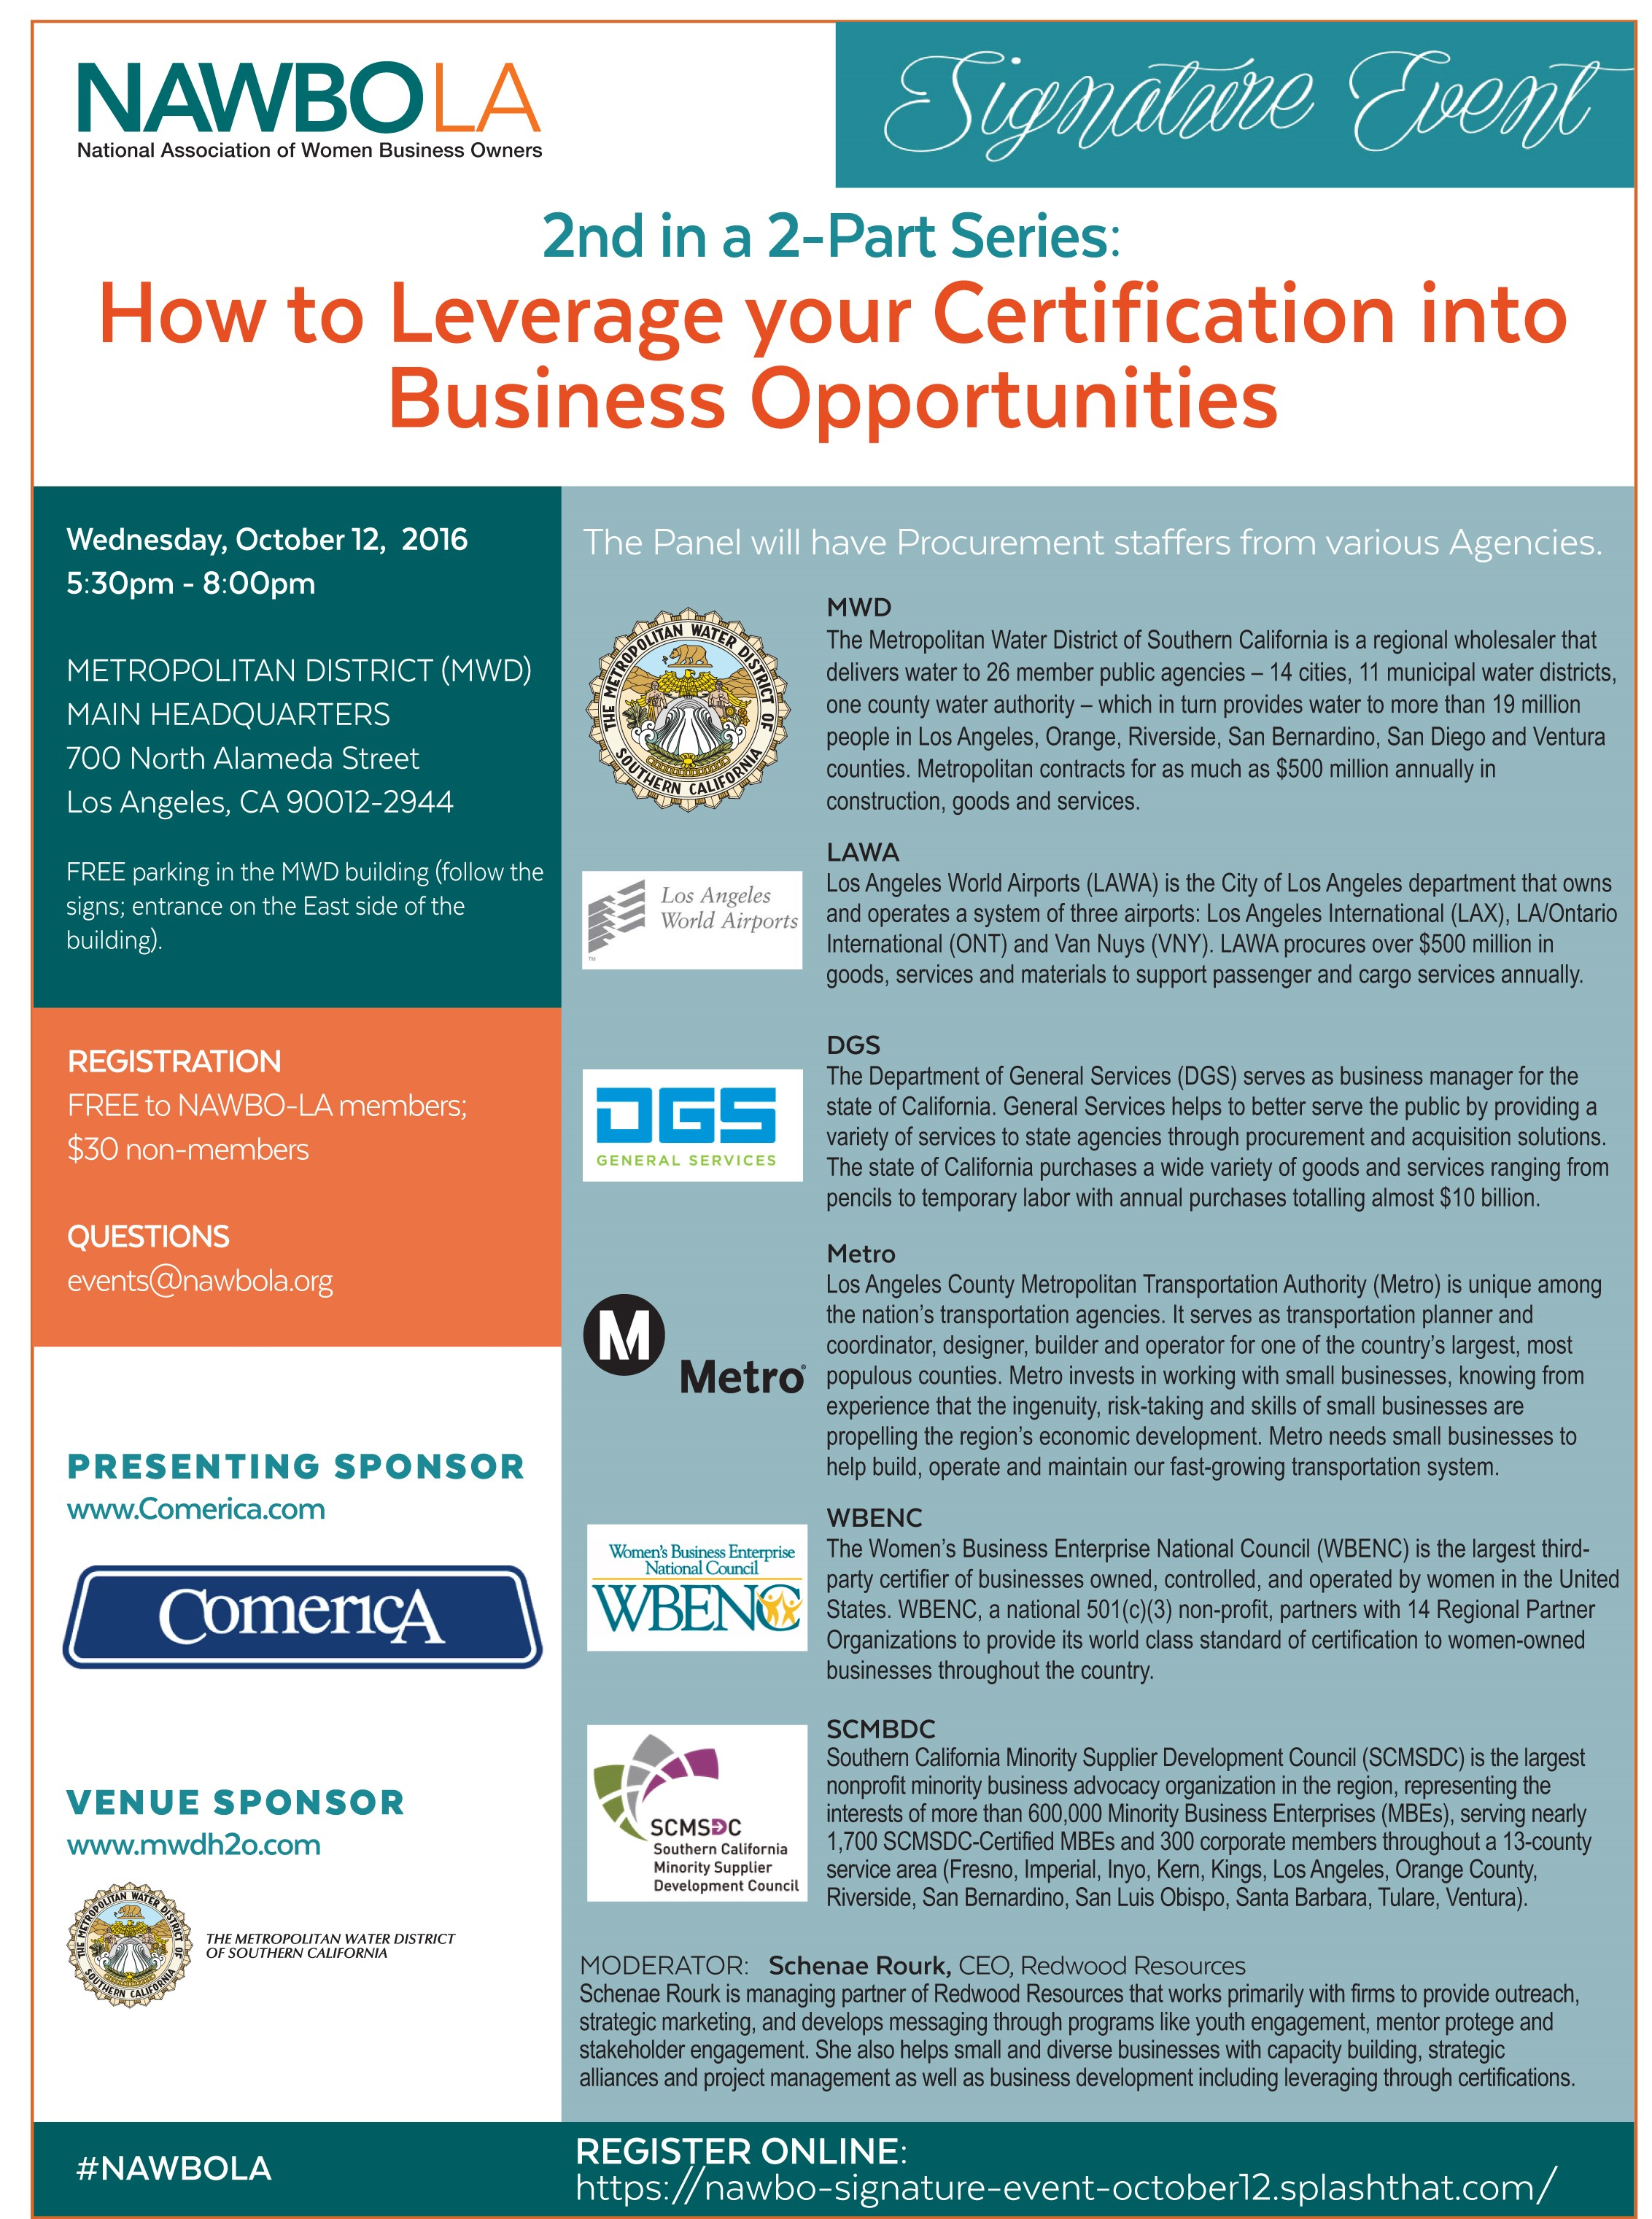 Leverage Your Certification Into Business Opportunities